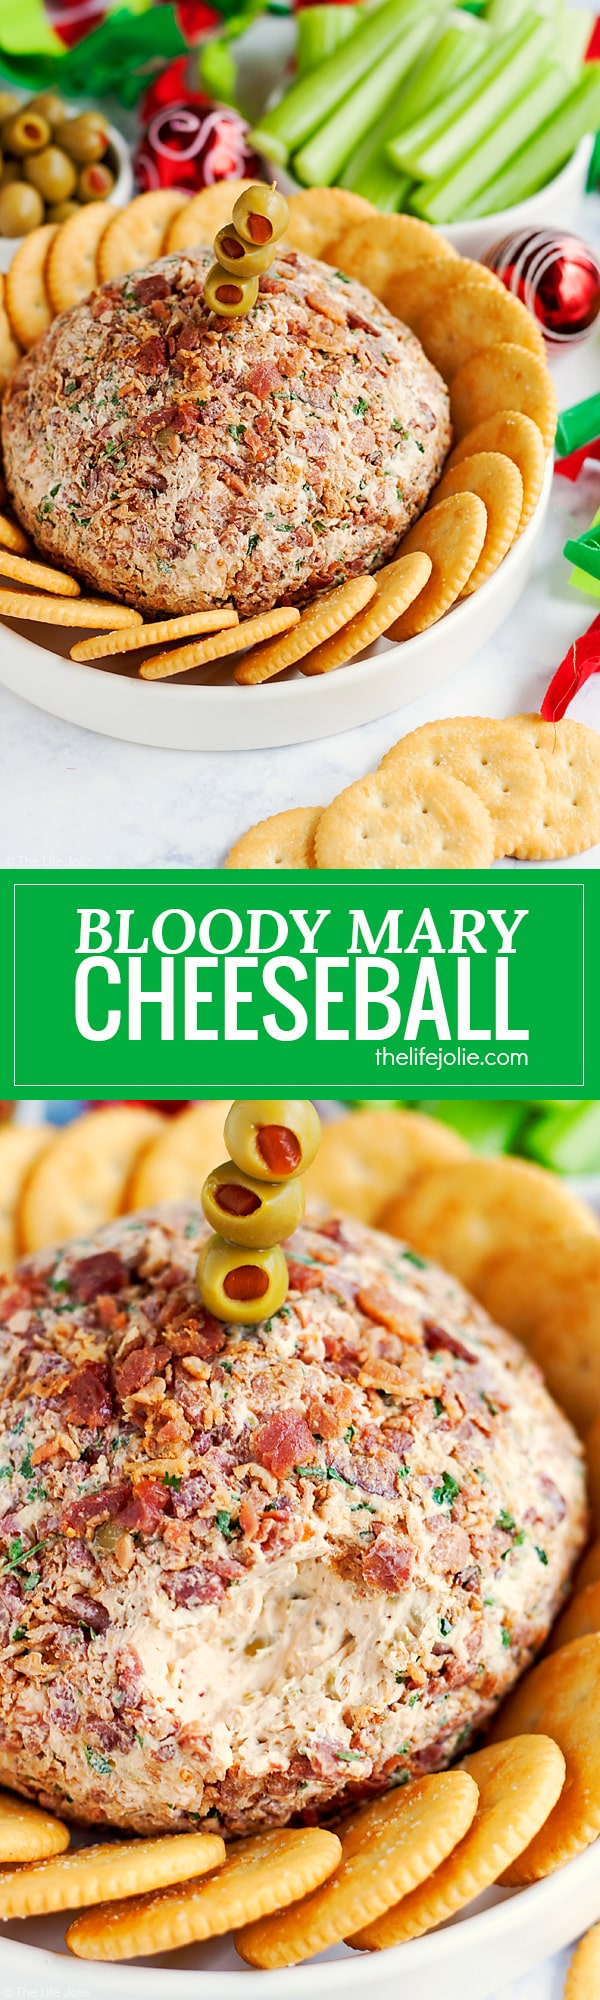 This Bloody Mary Cheeseball Recipe is the best easy appetizer option for entertaining. Made with many of the same ingredients and toppings as a traditional Bloody Mary drink (but without the alcohol) this family friendly hors d'oeuvre is full of great flavor and would look especially festive at a Christmas or other holiday party.